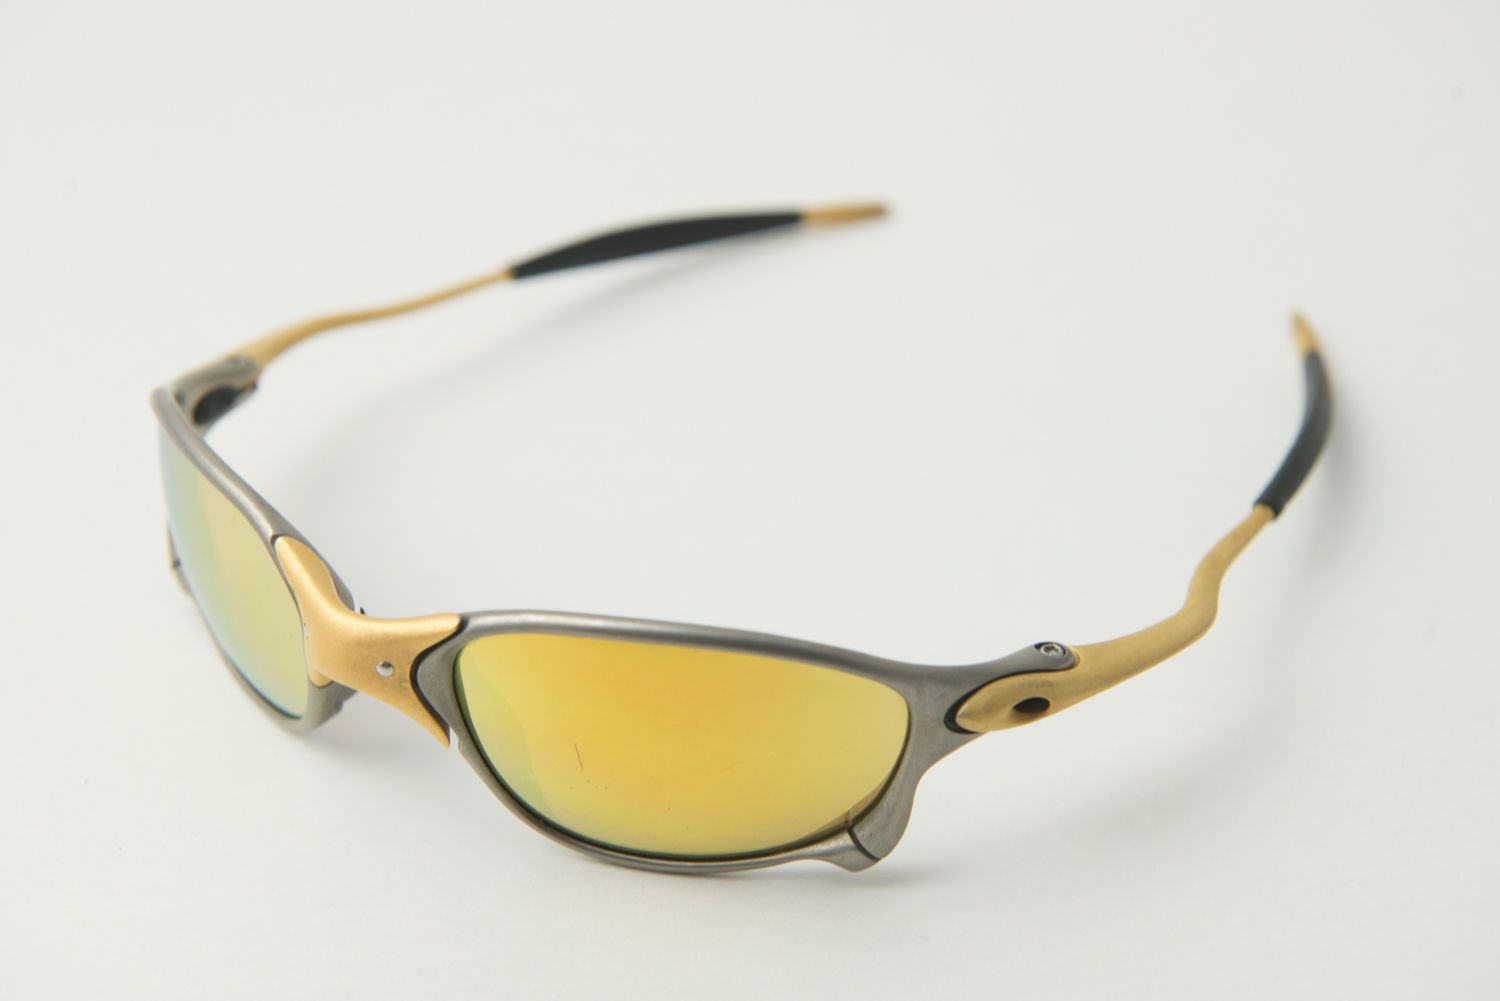 b0a0e8151 Oakley X-Metal XX 24K/24K Gold Iridium Sunglasses Rare -  BuyClothingShoes.com